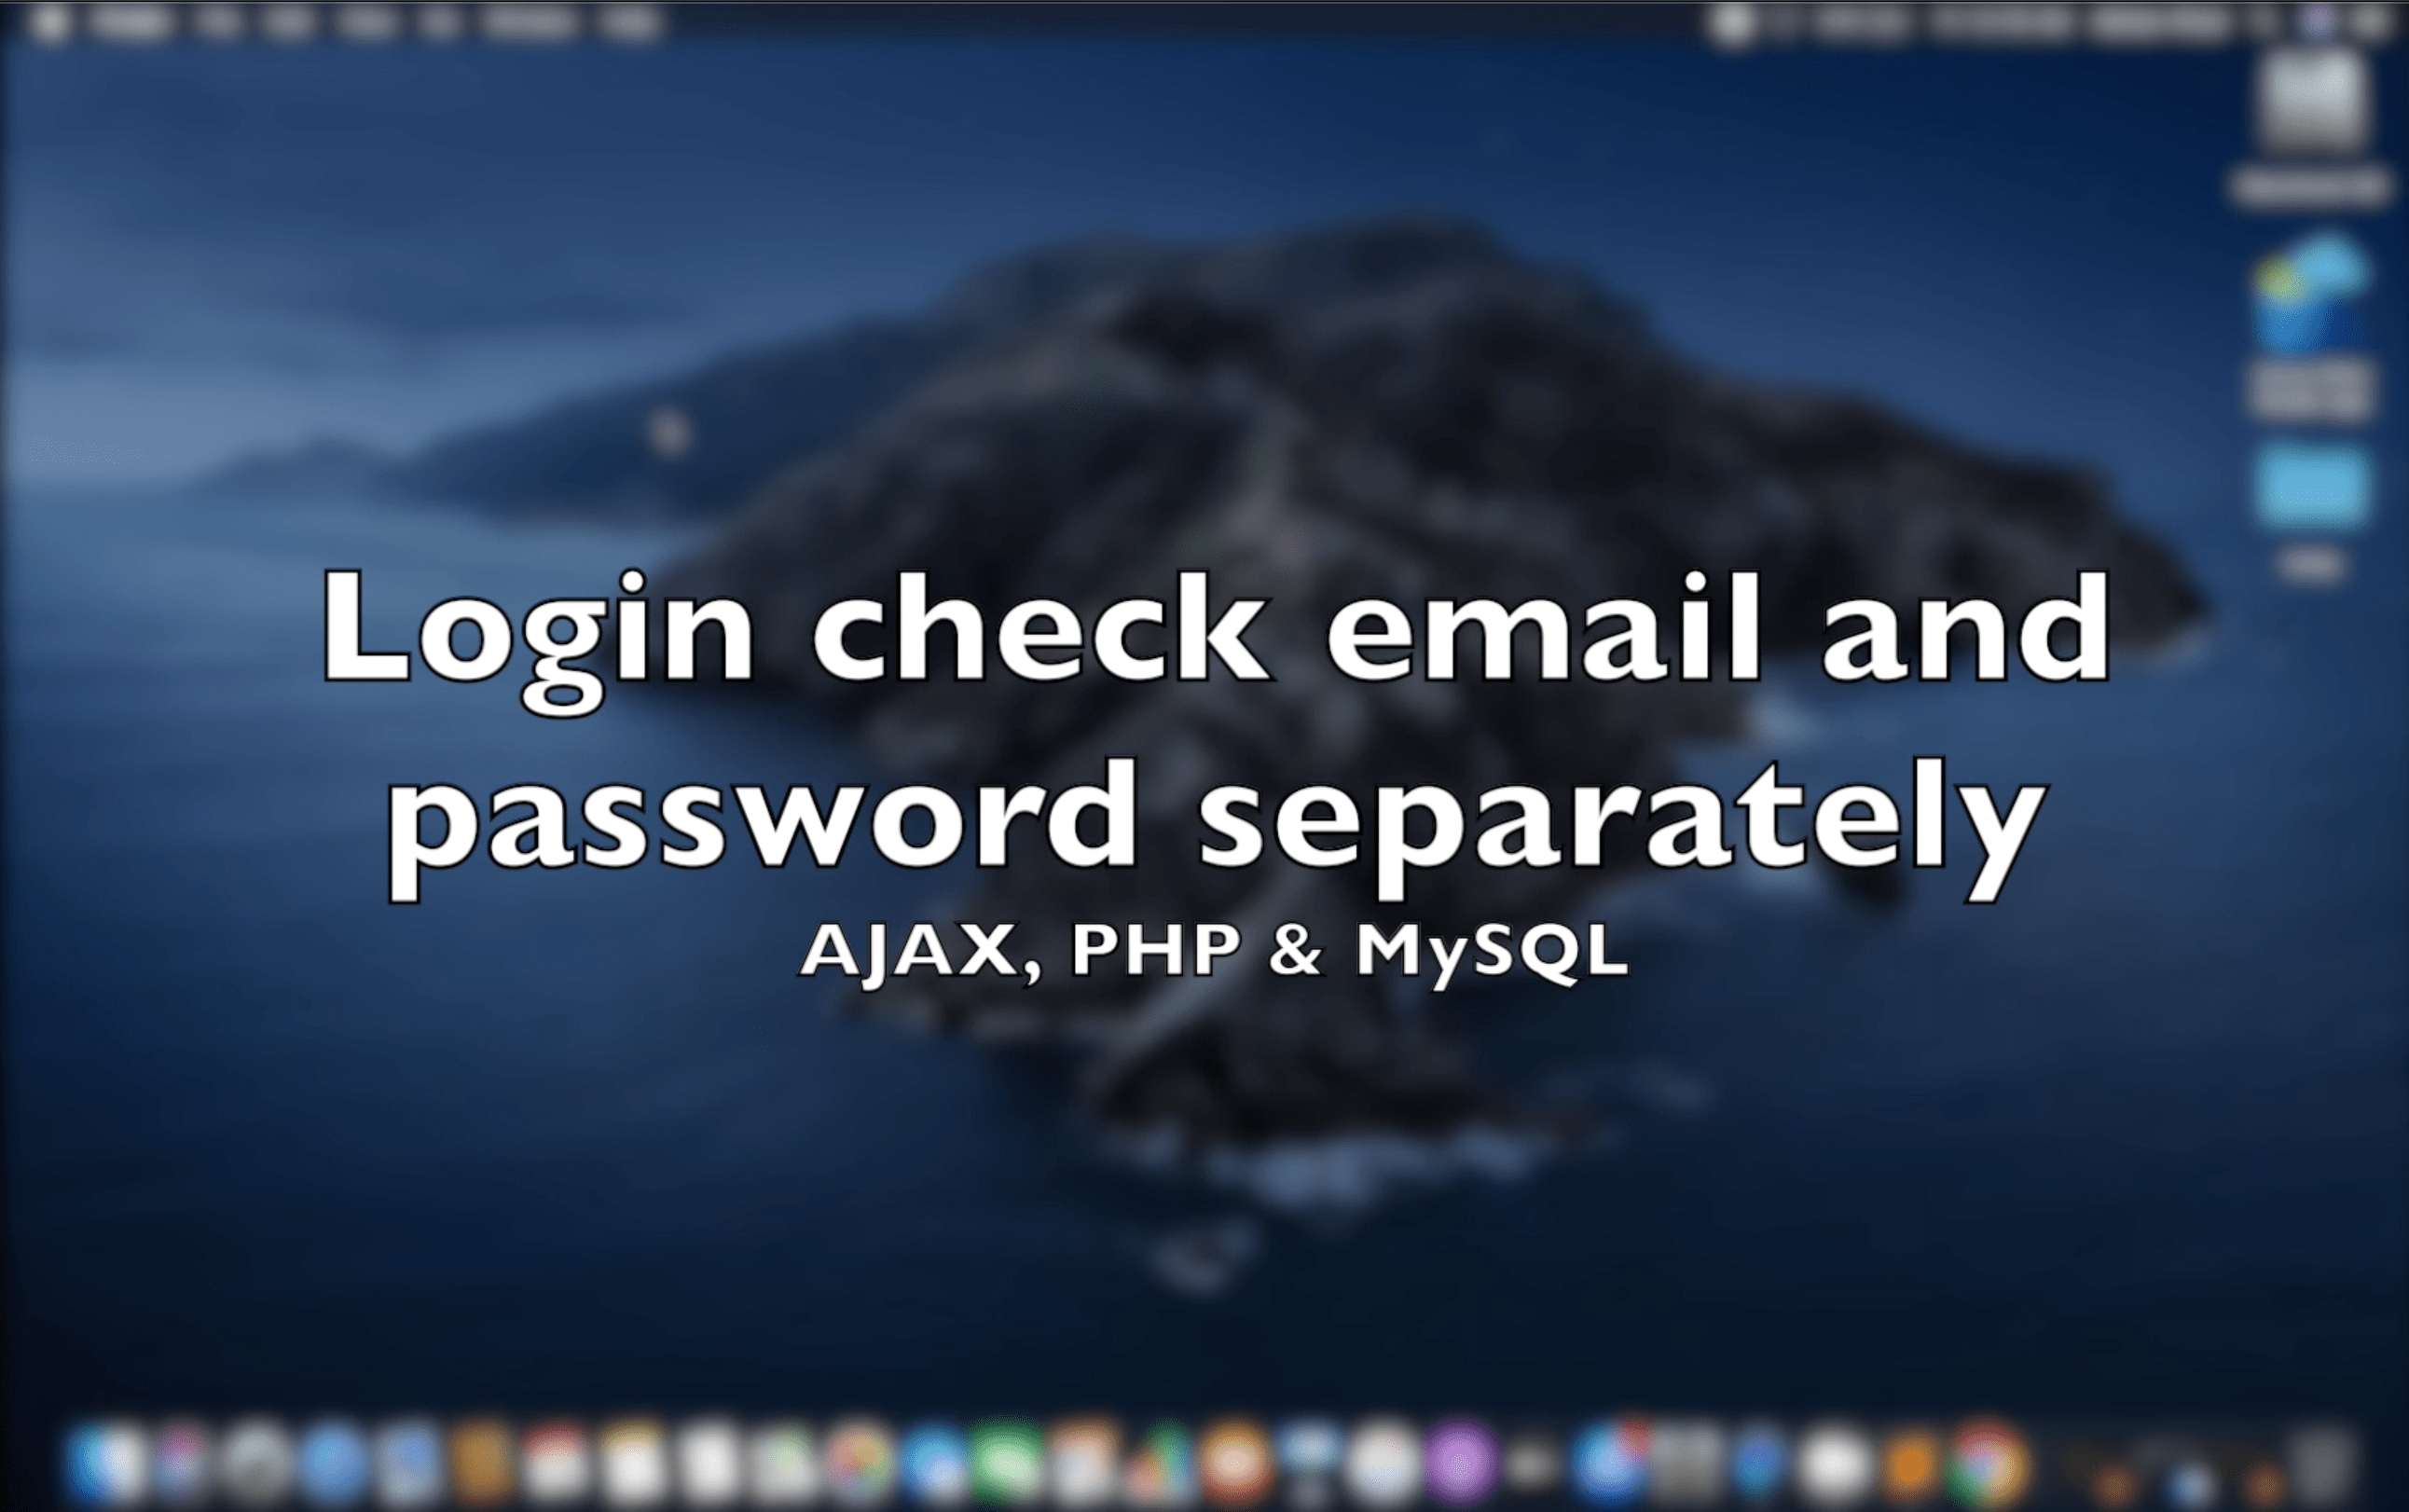 Login check email and password separately